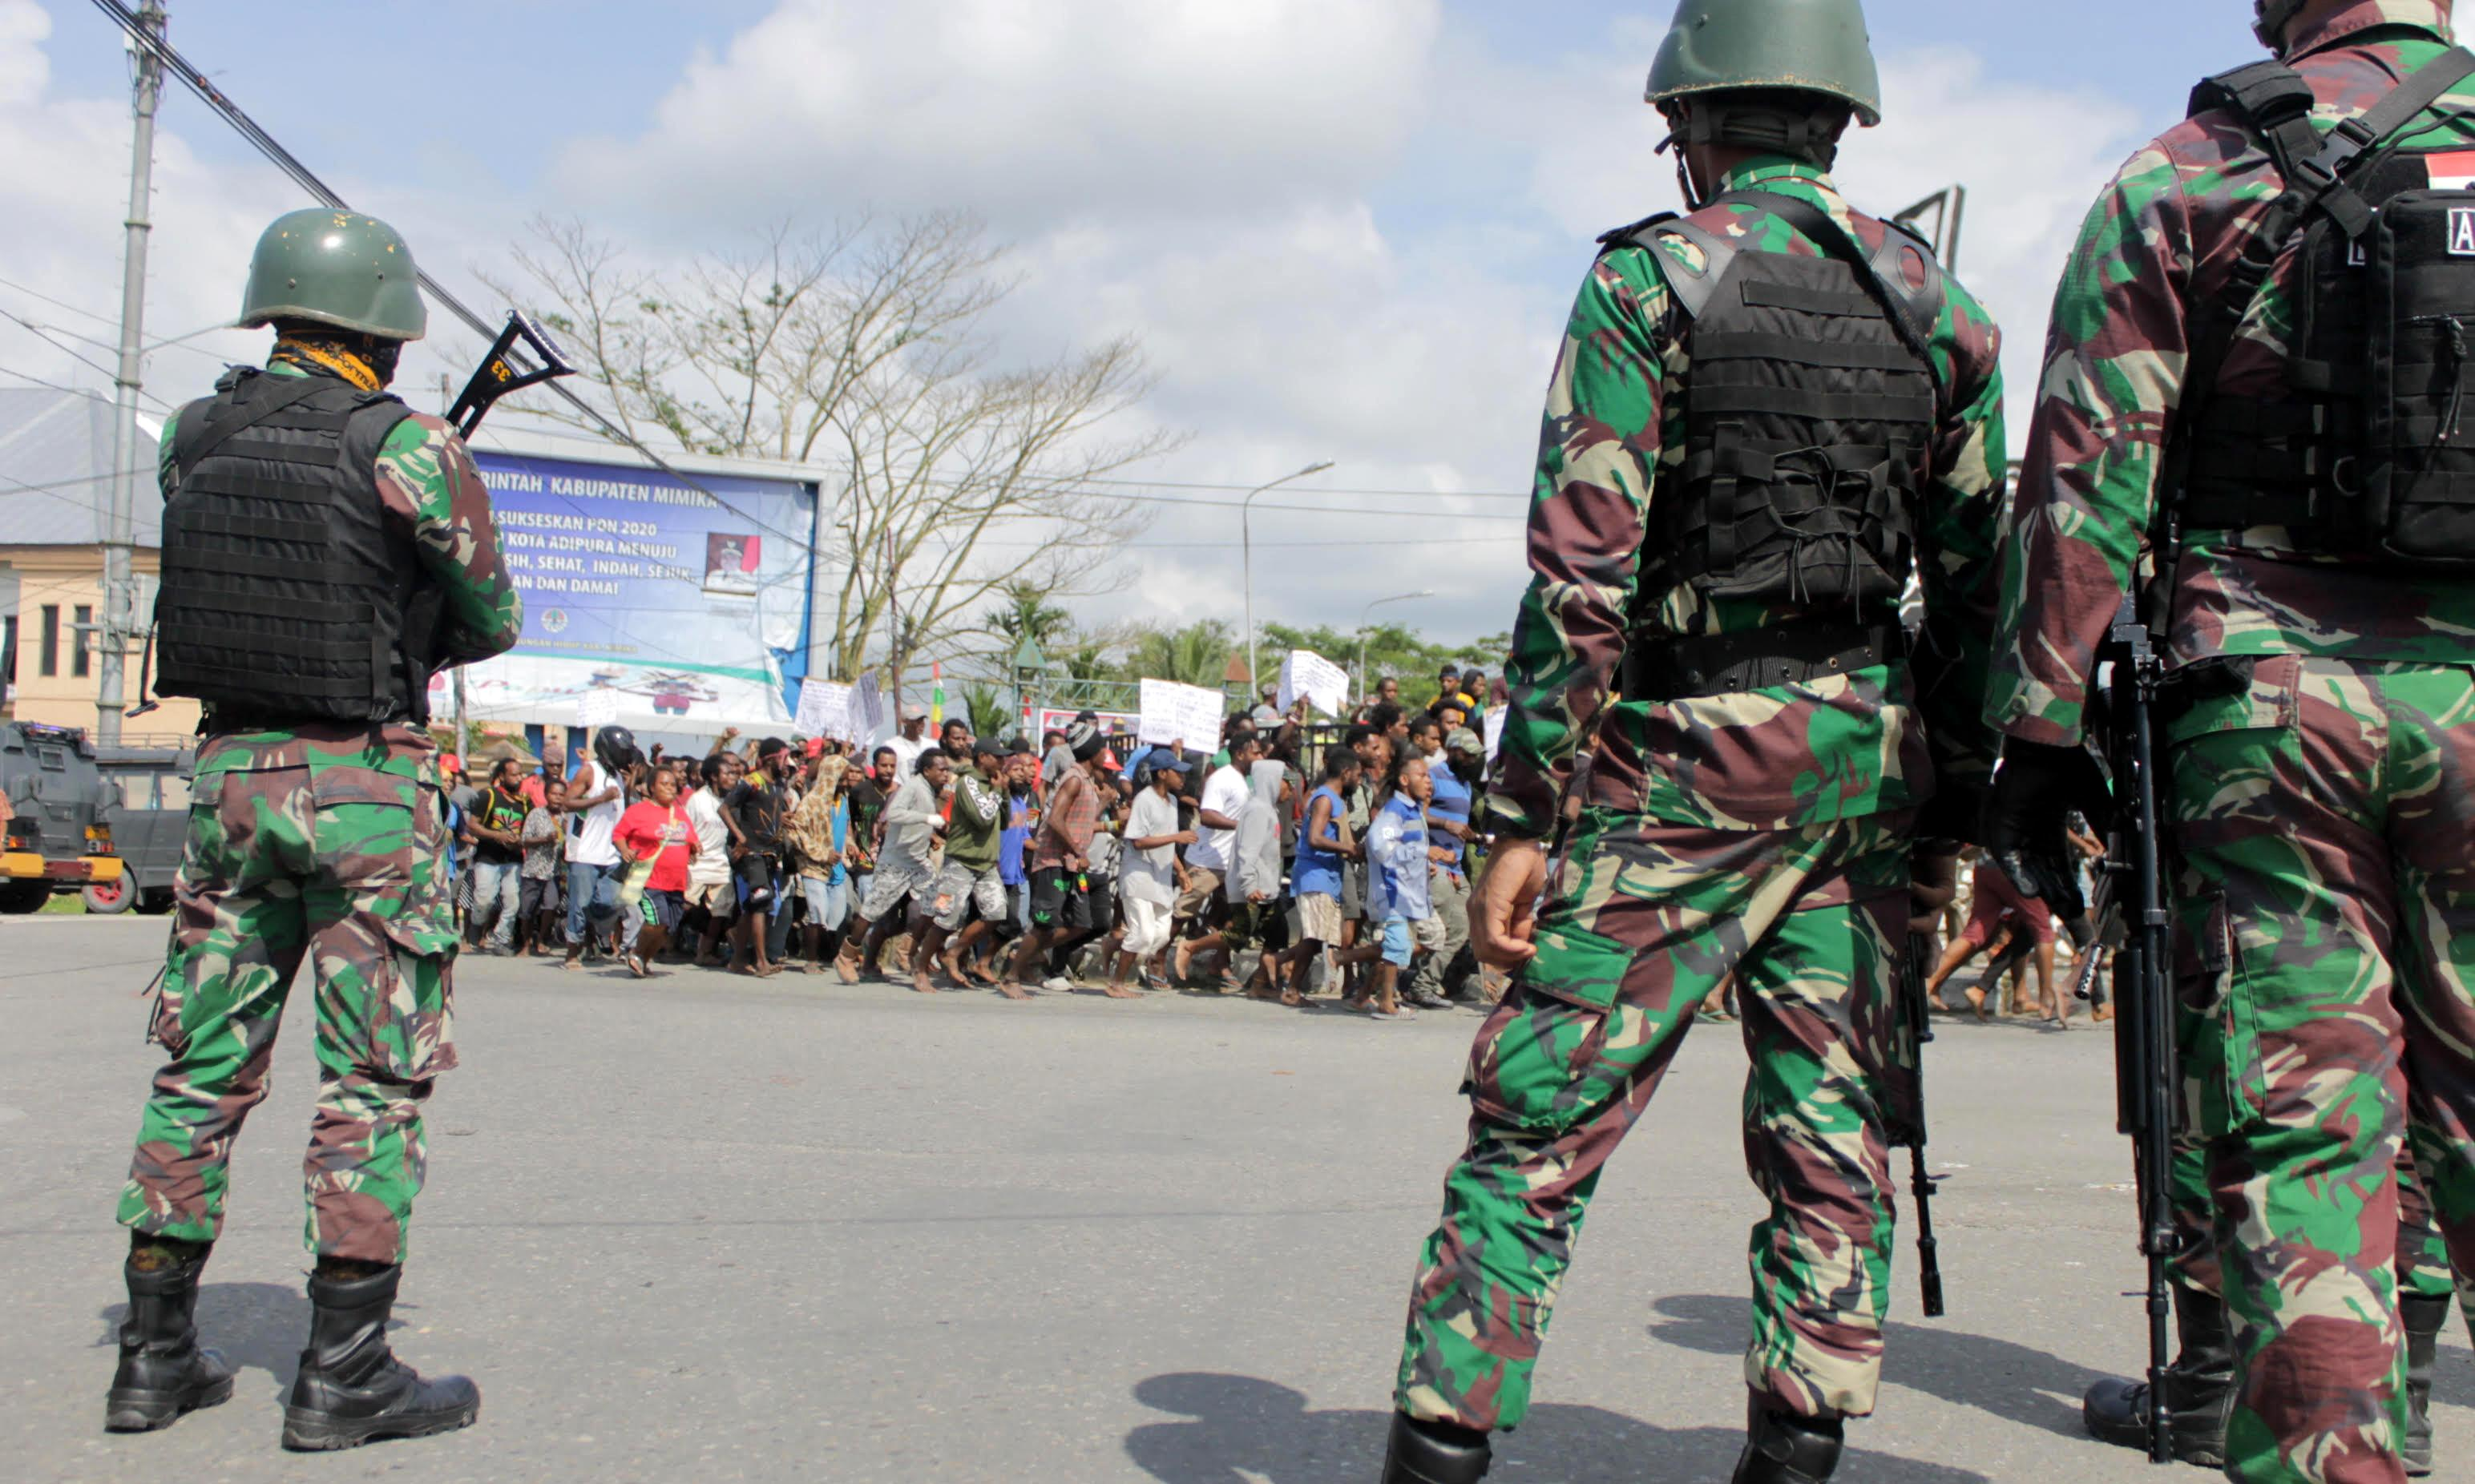 West Papua protests: Indonesia deploys 1,000 soldiers to quell unrest, cuts internet